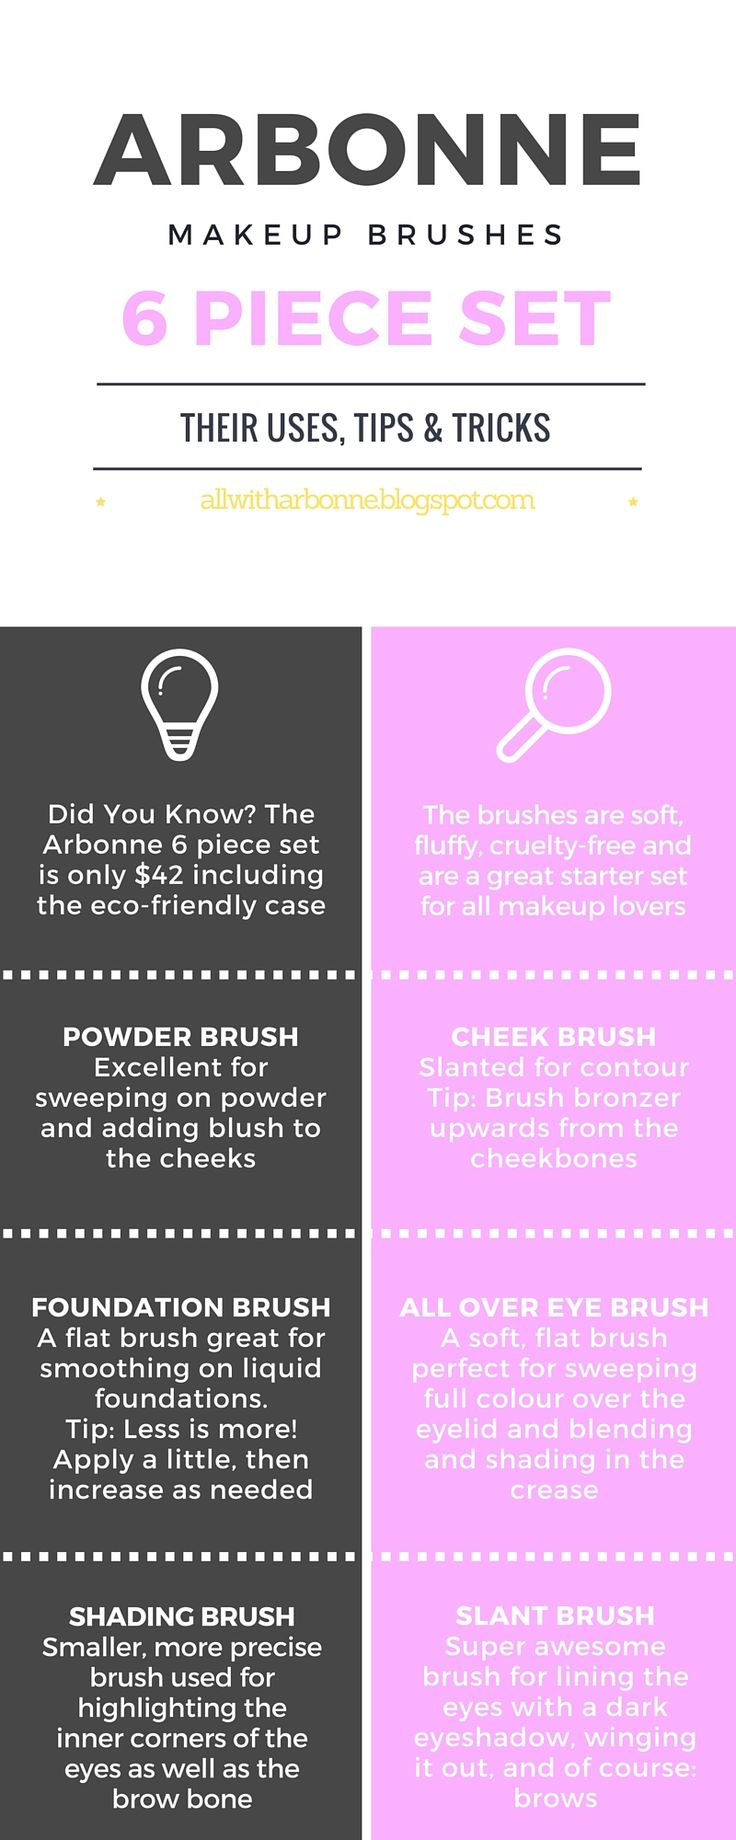 Arbonne Cosmetics Brush Set free shareable infographic for clients and consultants